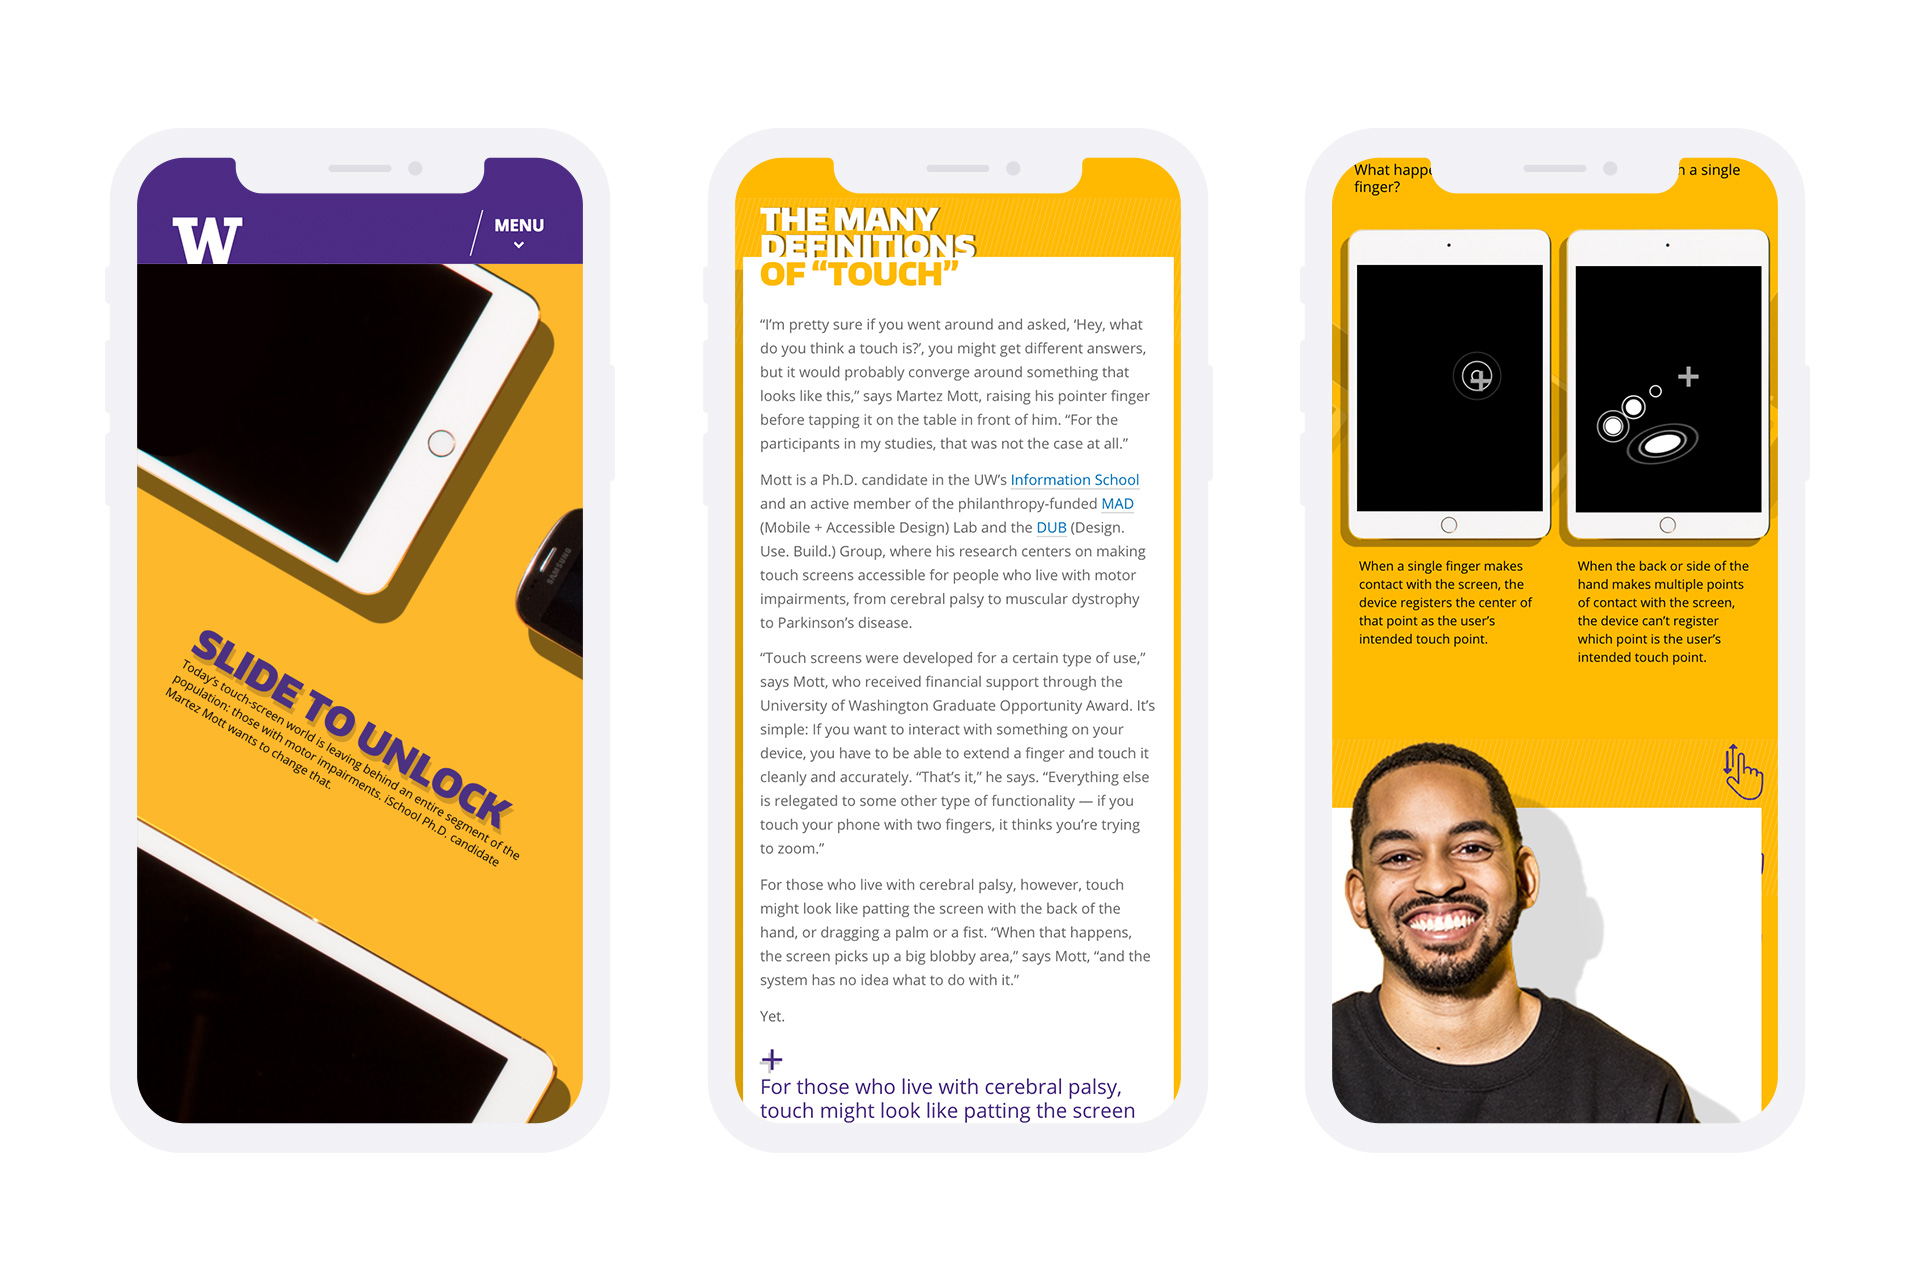 university of washington ischool website mobile mockup example 1